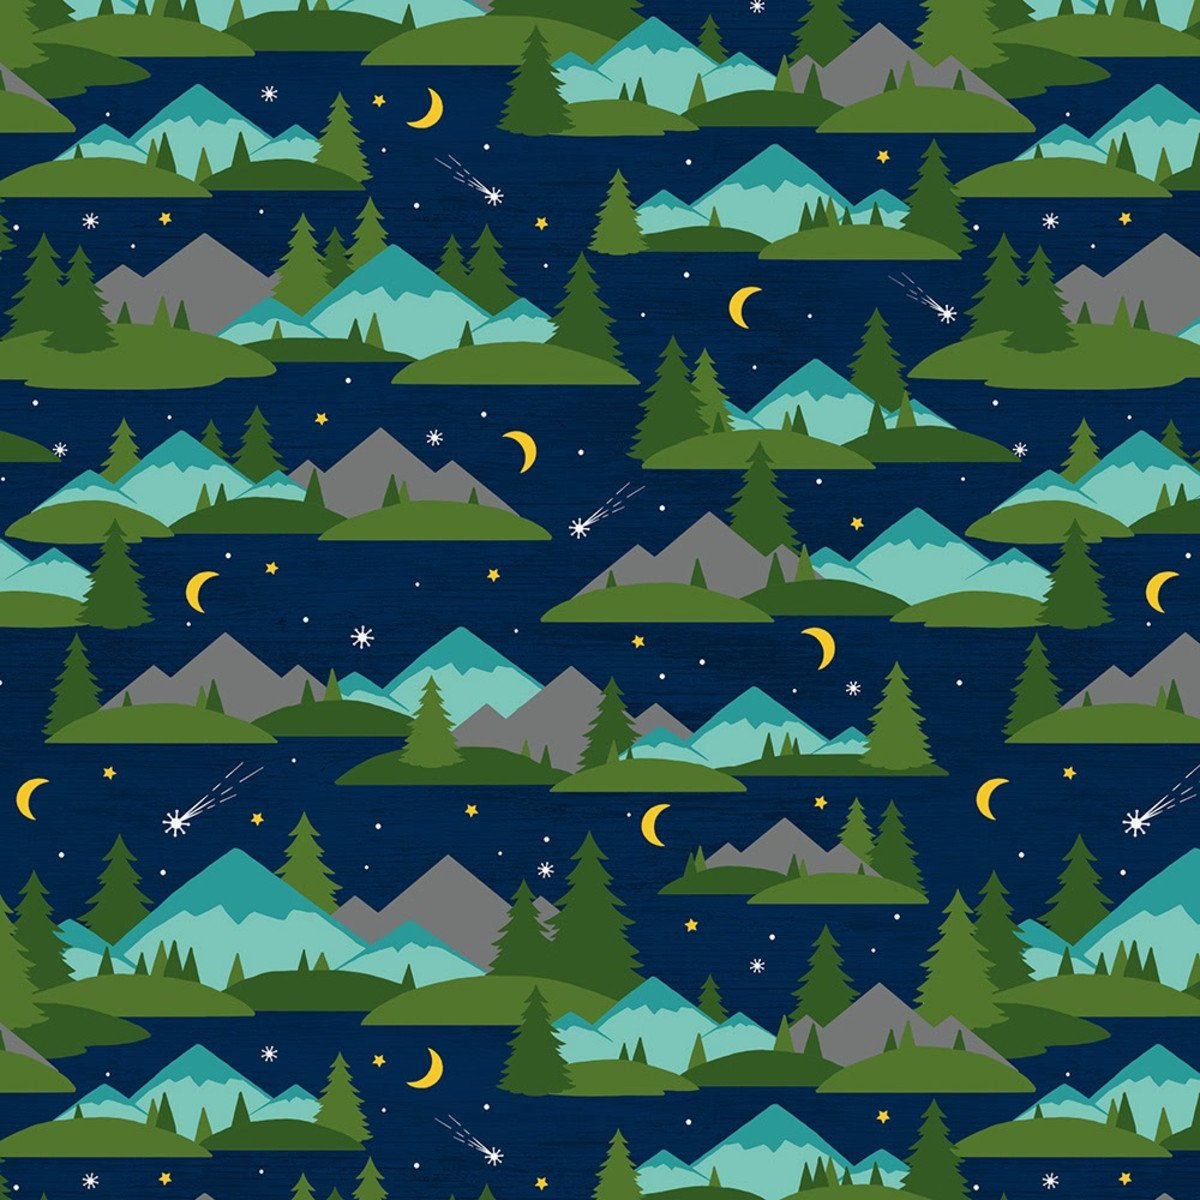 Wilmington Prints - Gone Glamping - Mountains & Trees (Blue)